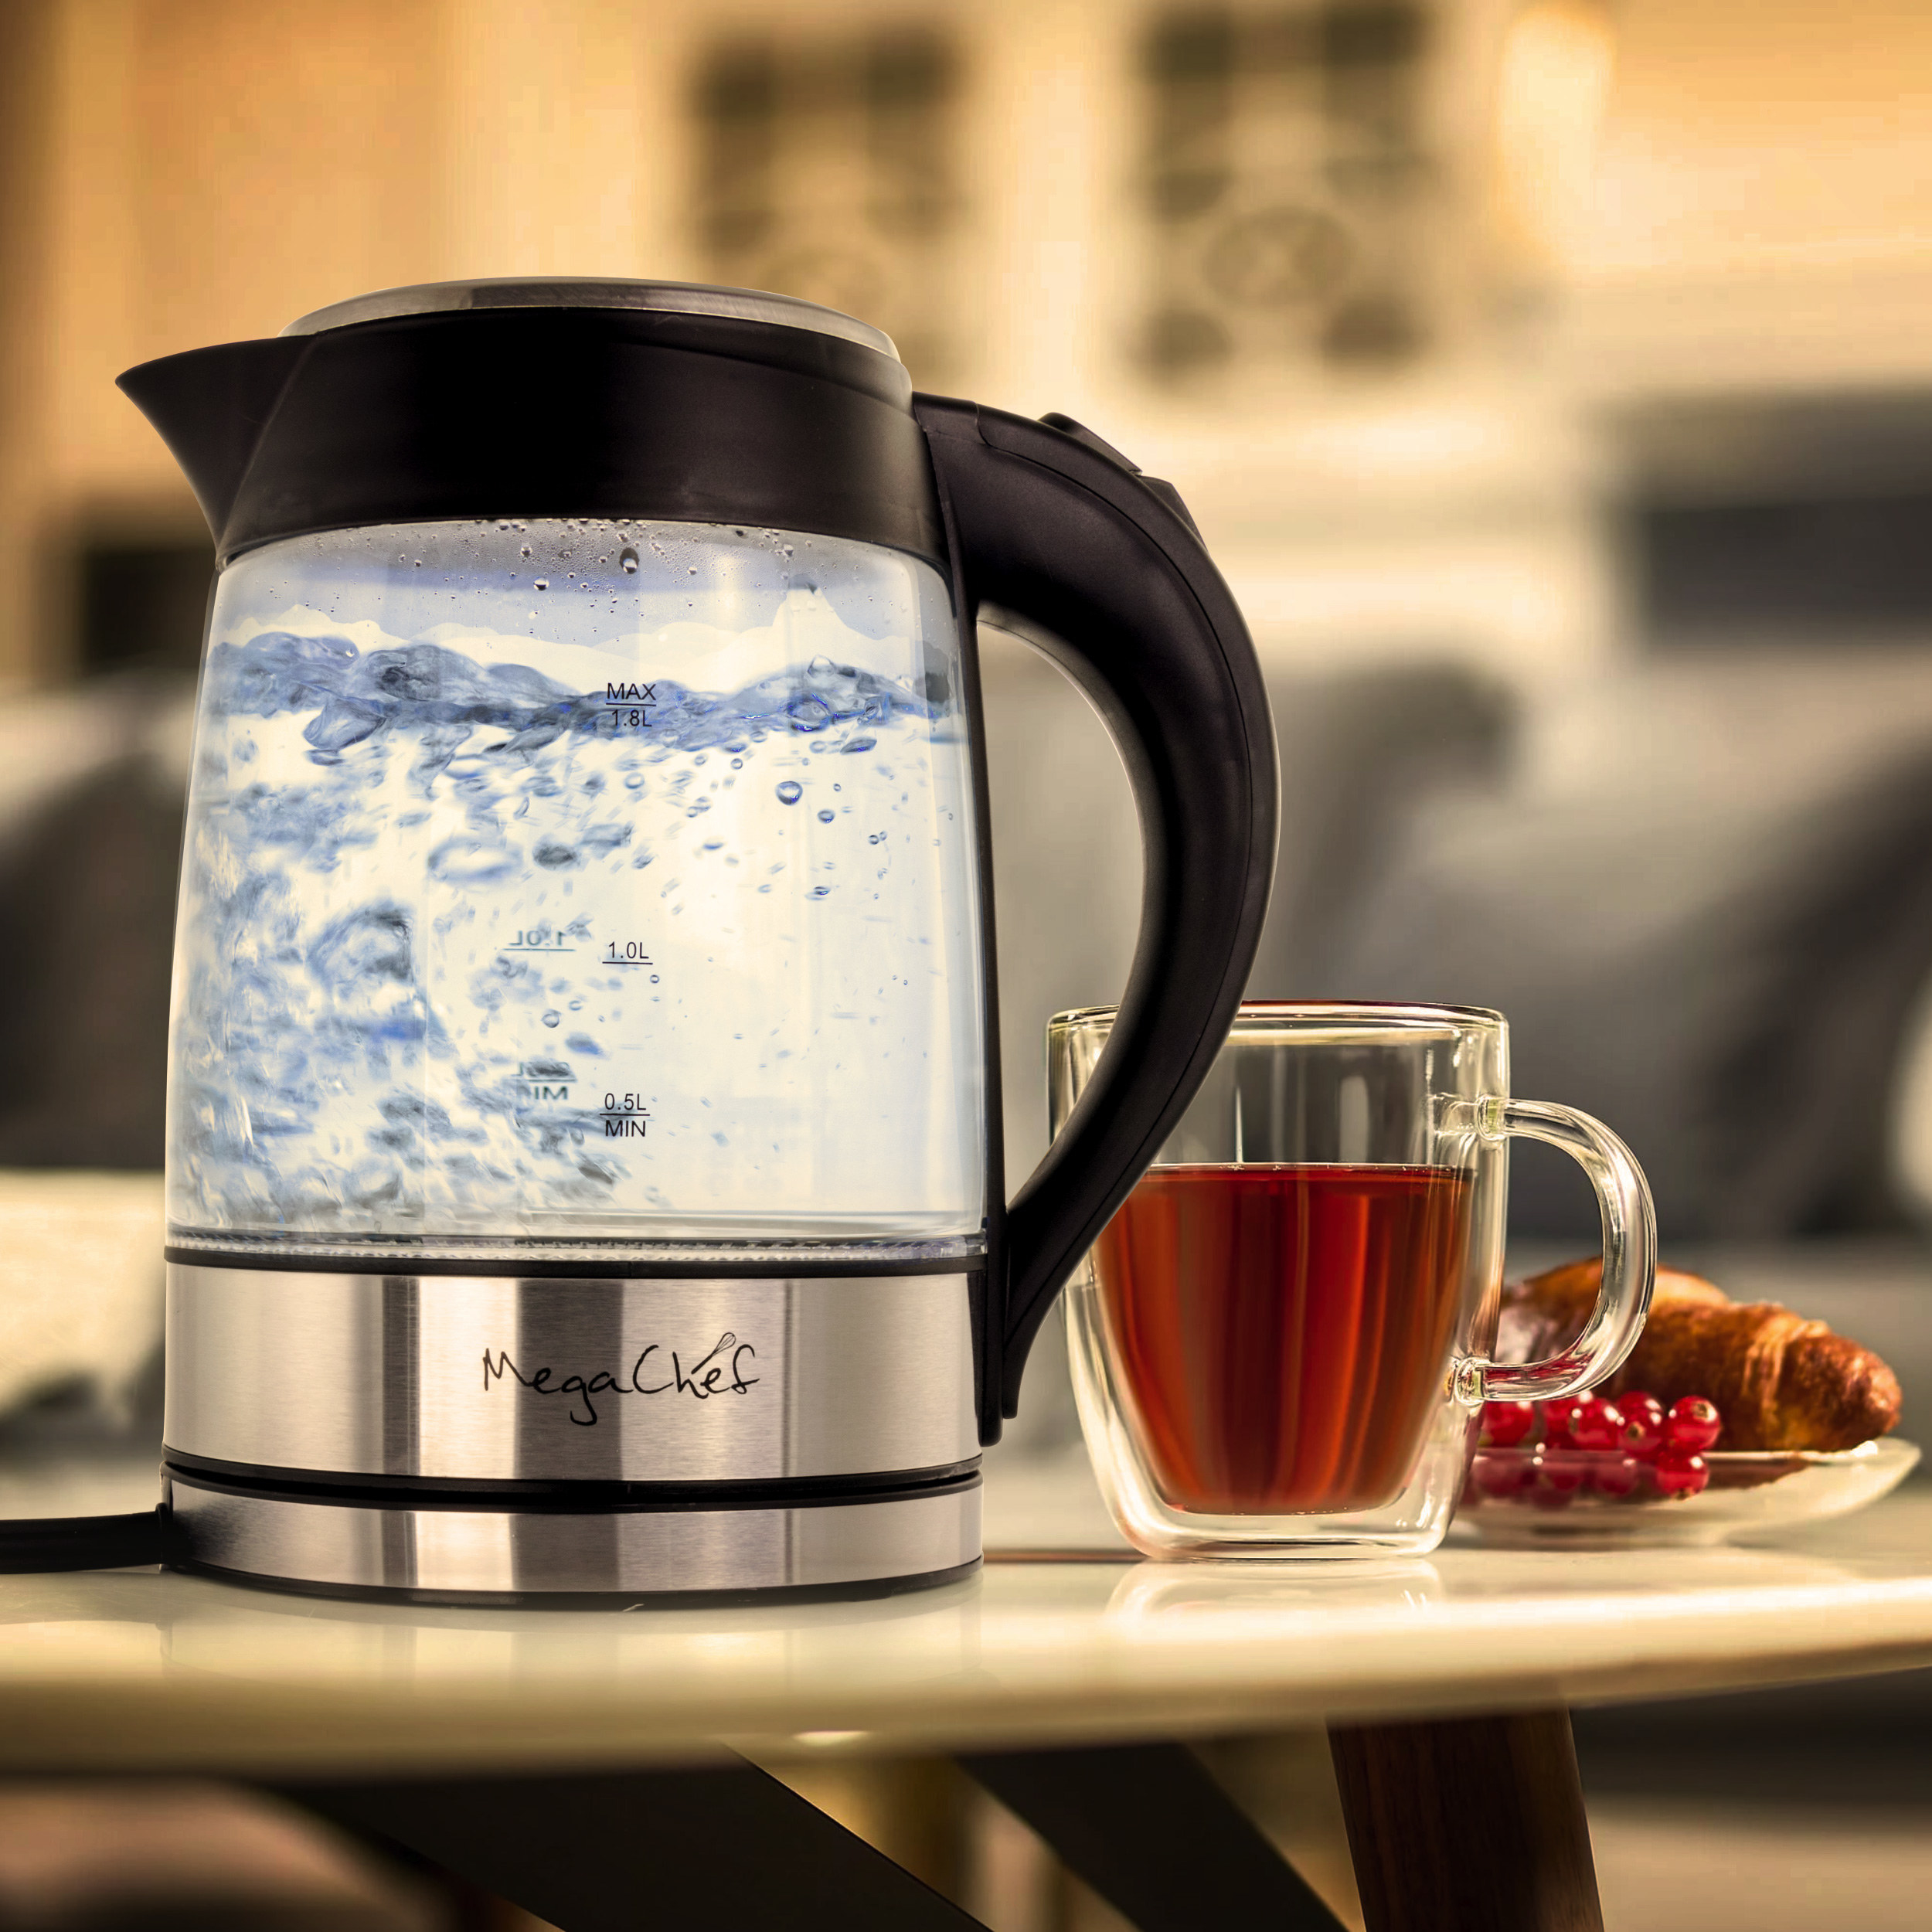 electric tea kettle on a countertop